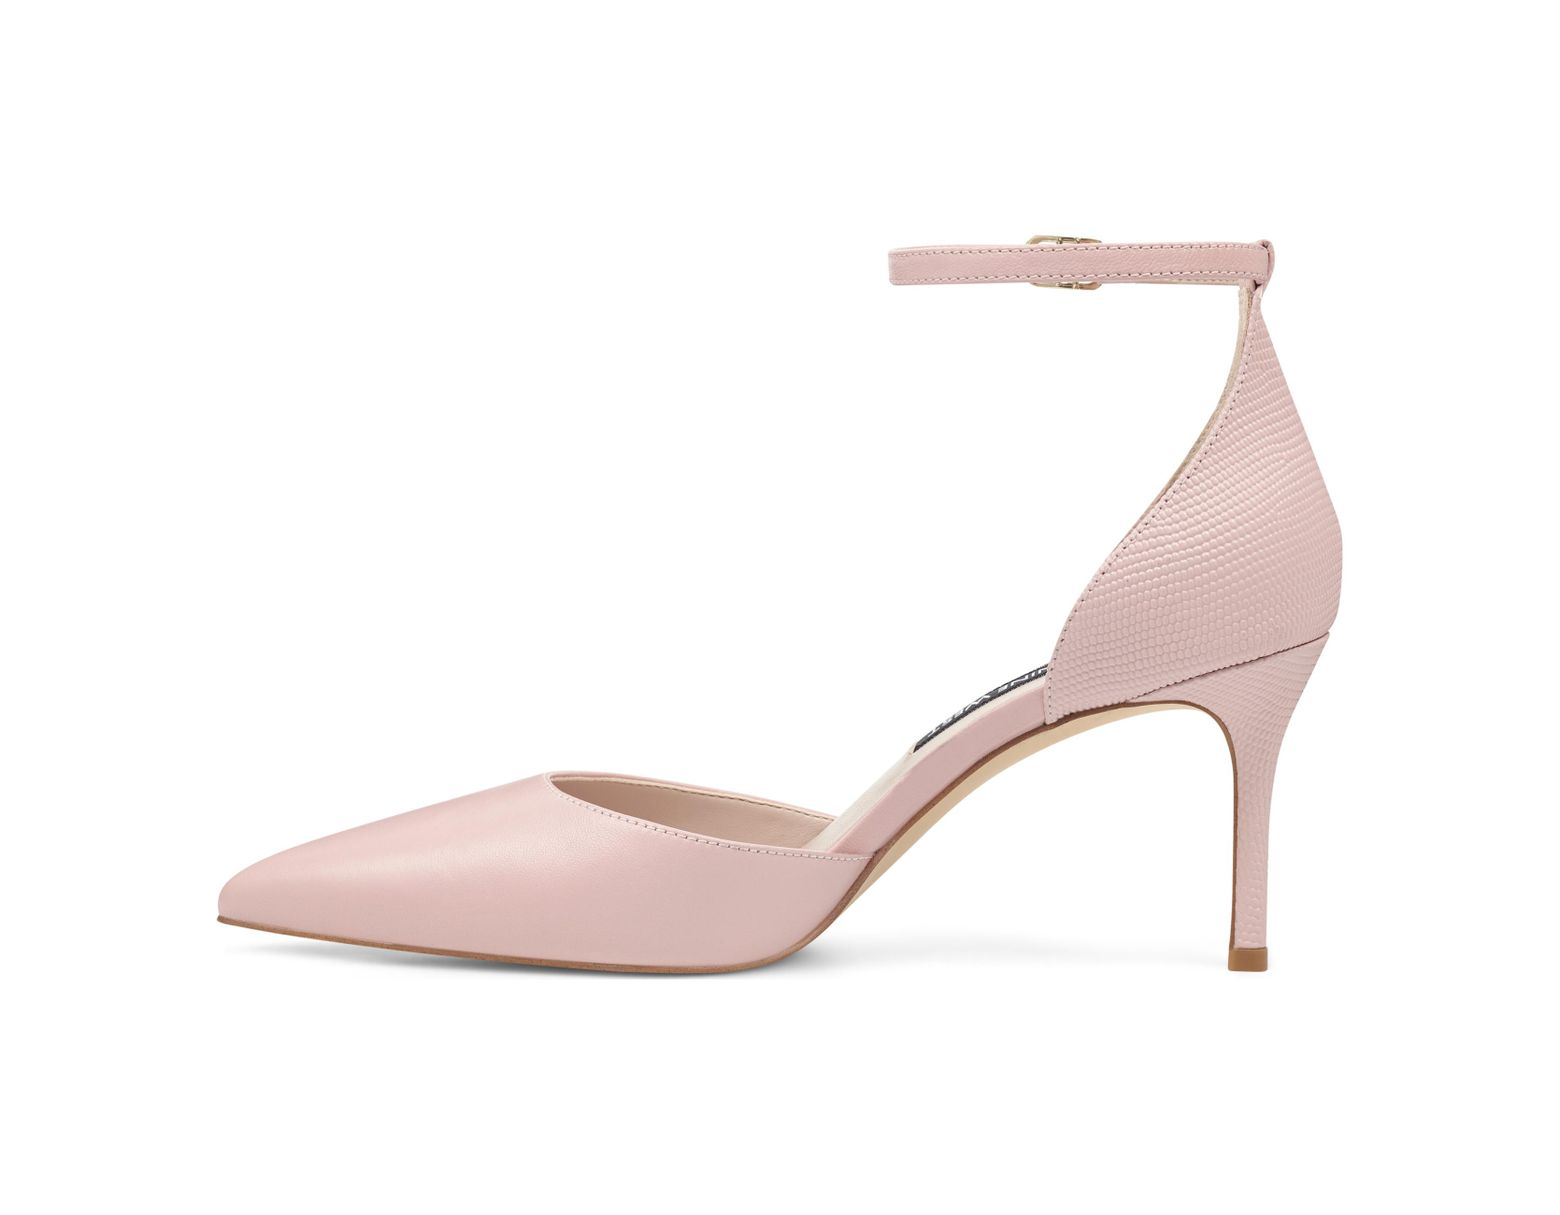 f8603b8f7 Nine West Marisa Ankle Strap Pumps in Pink - Save 38% - Lyst